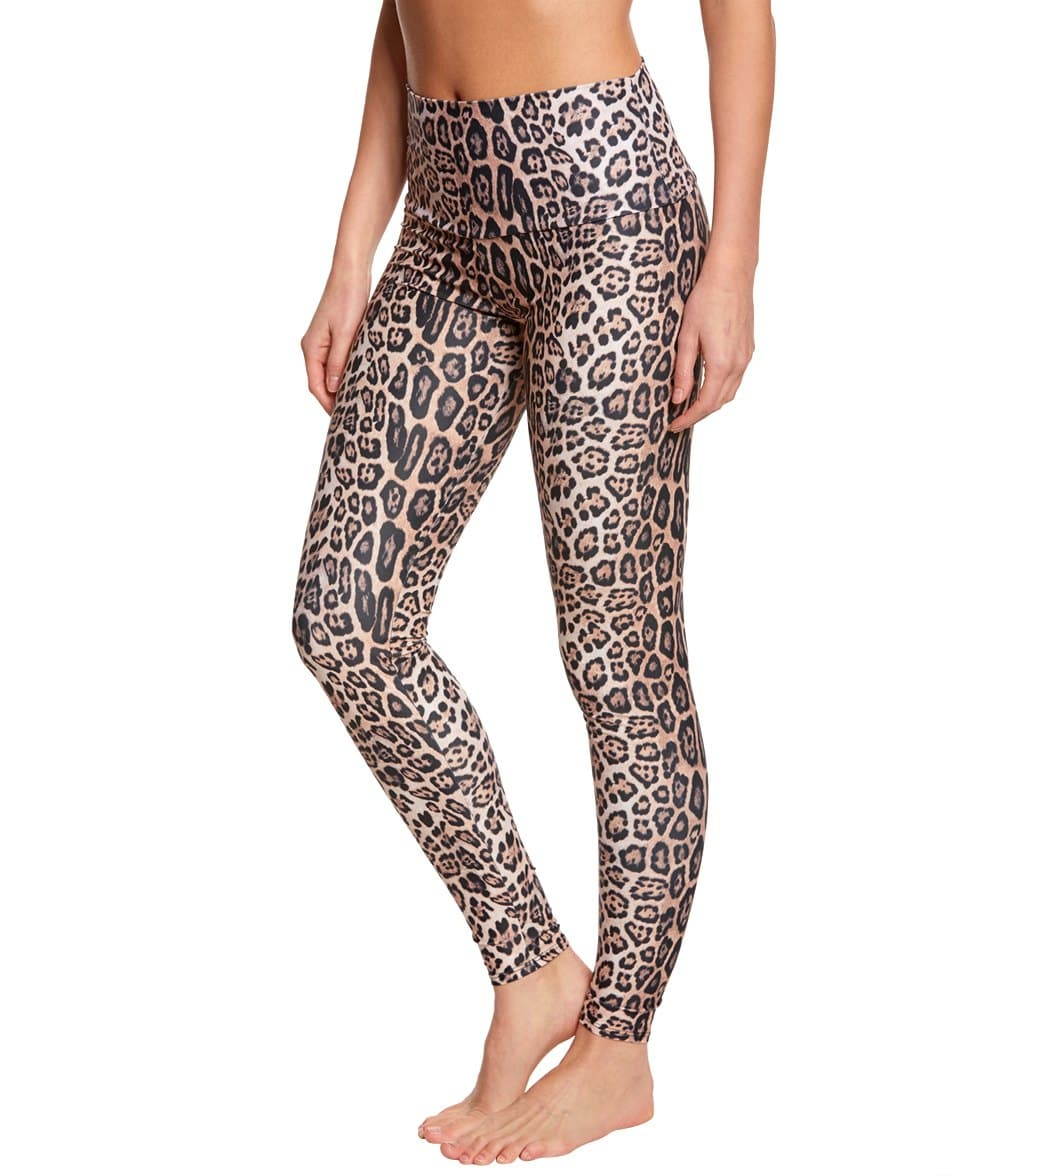 Back From Bali Big Girls Leggings Cotton Ankle Length Ages 10-13